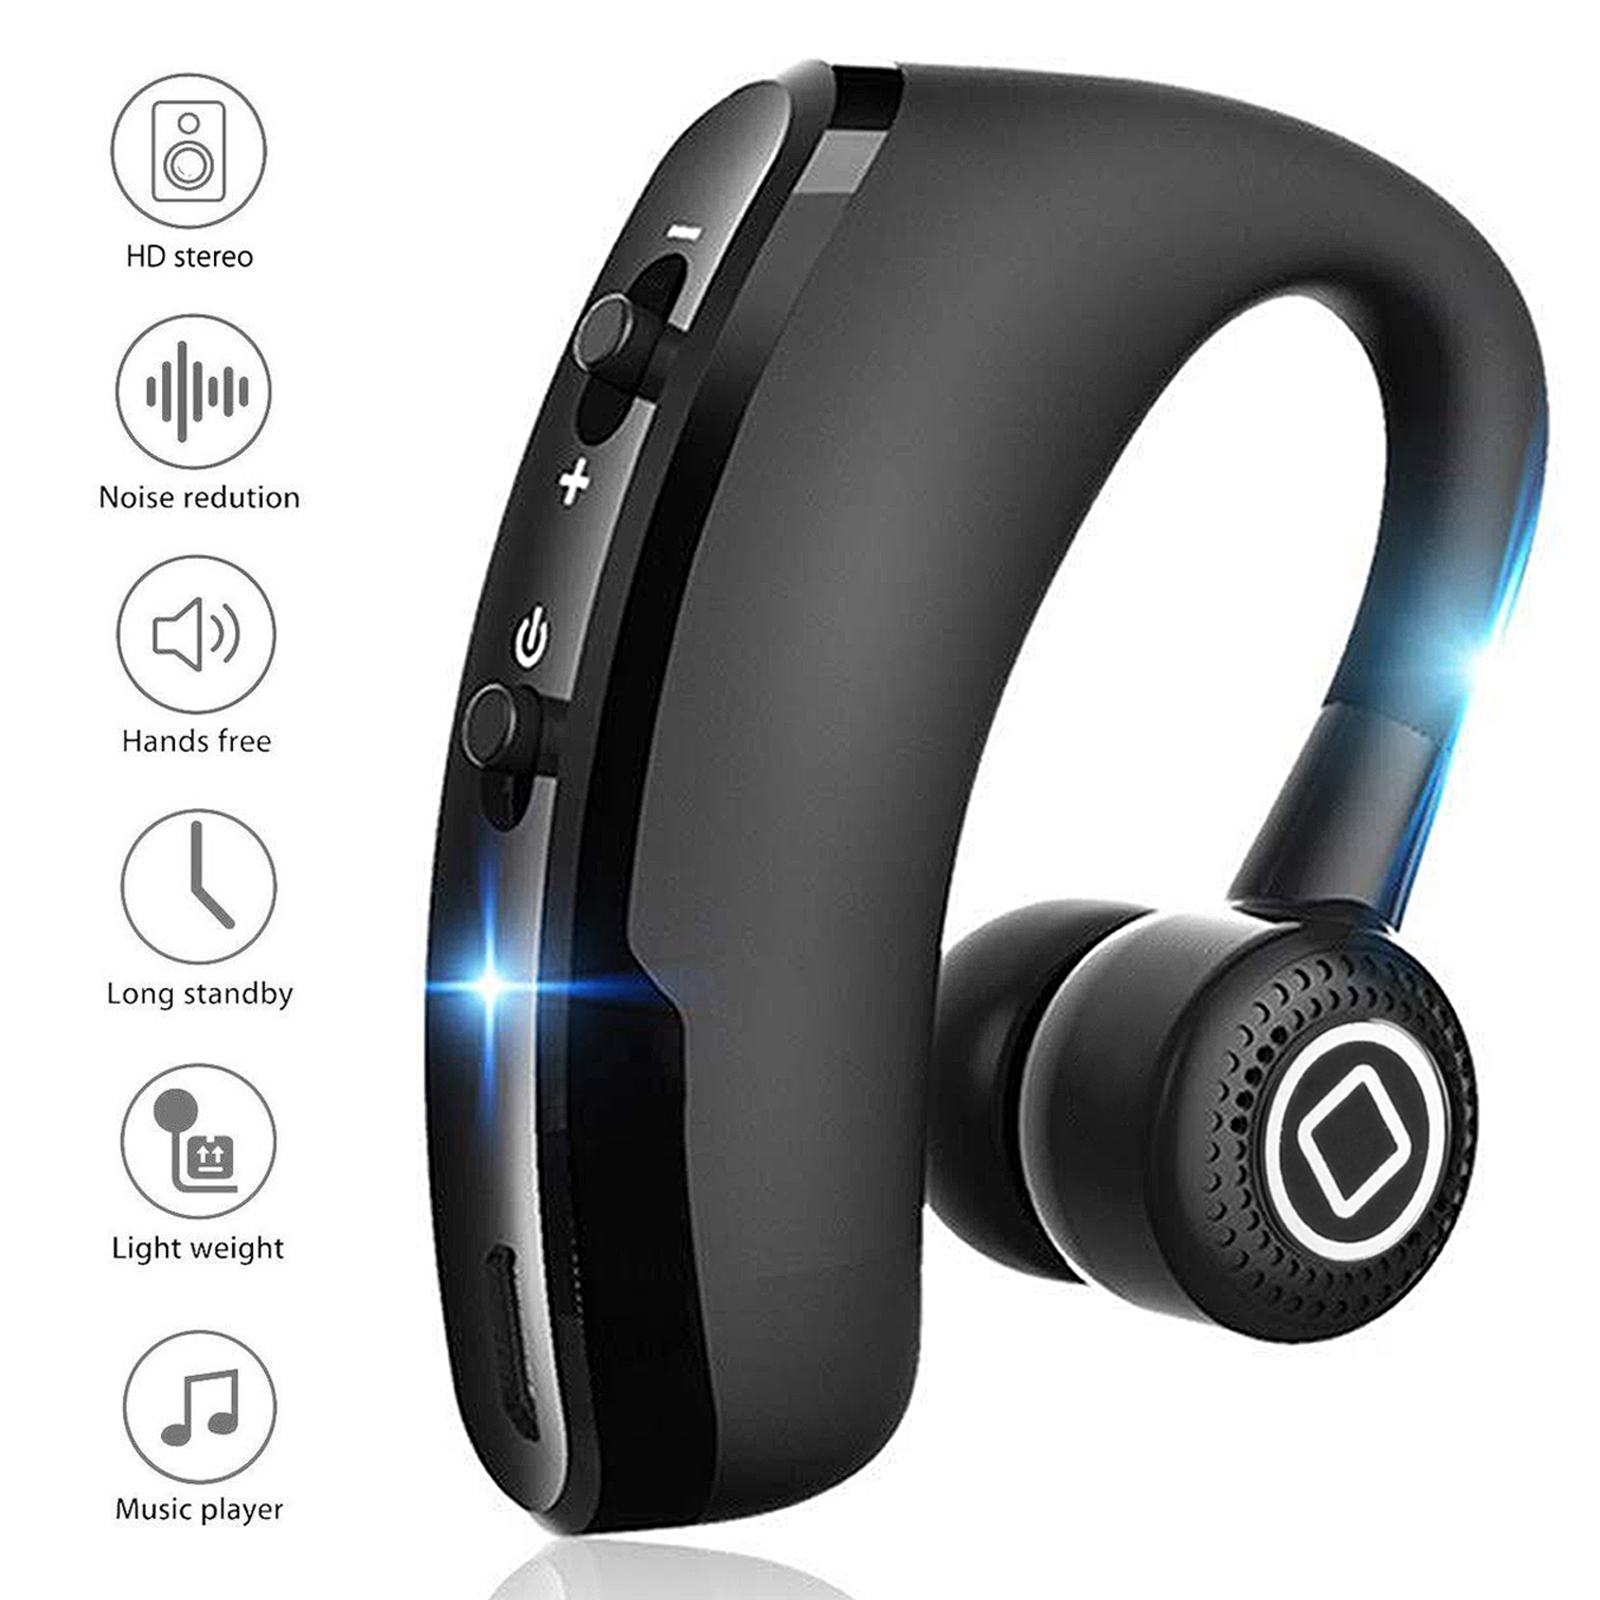 TSV Universal V9 Wireless Bluetooth 4.0 Single Headset Sports Headphone Earphone Handsfree(Fit for Right and Left Ear)